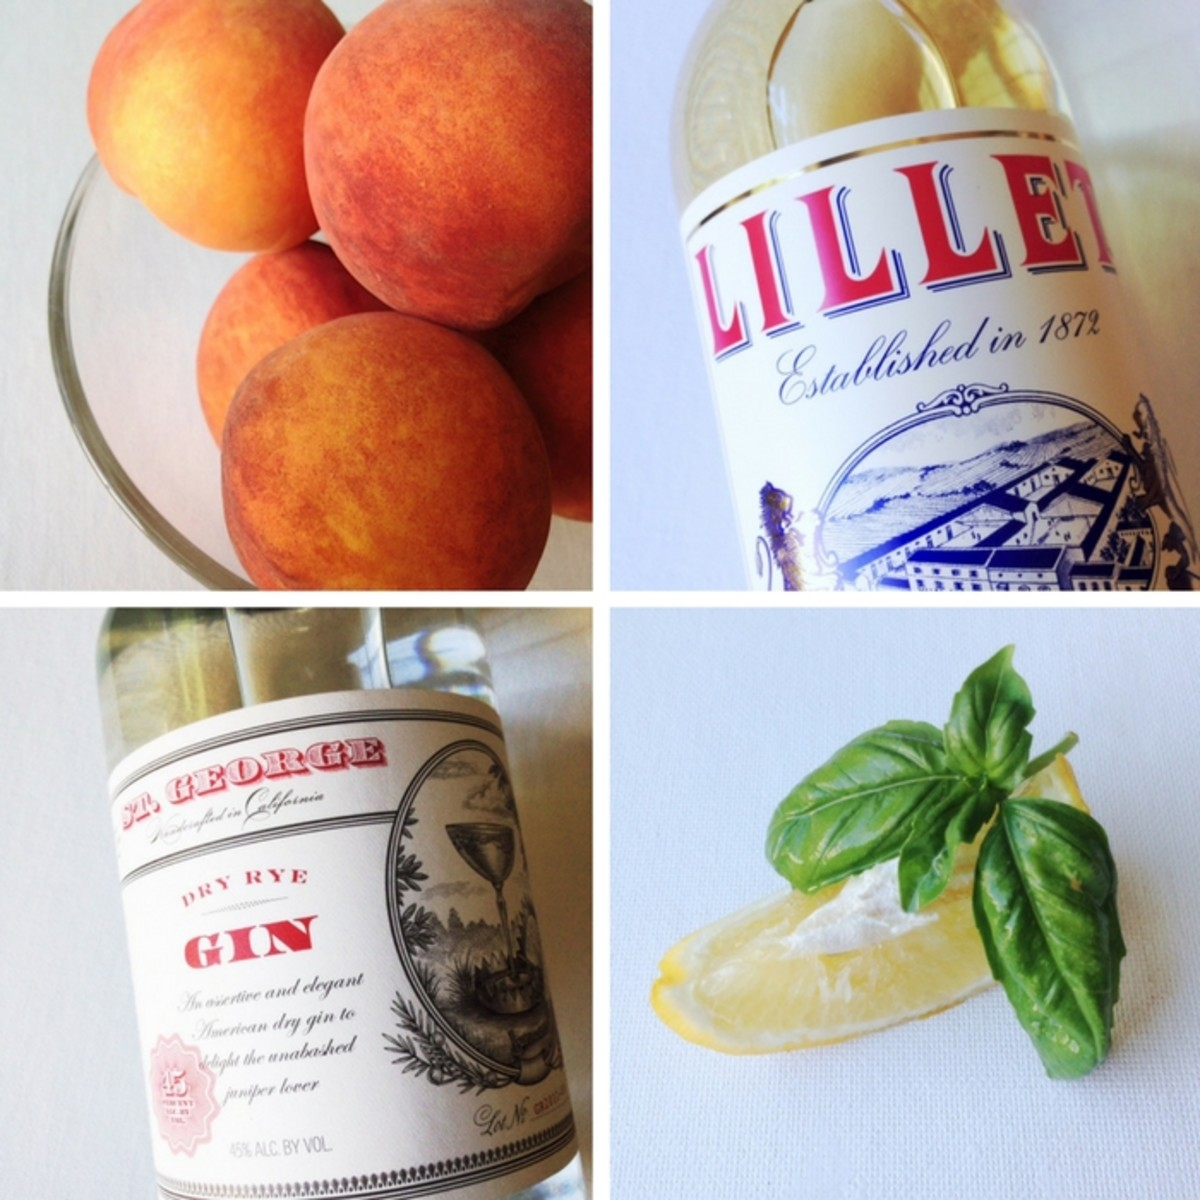 Peach cocktail ingredients